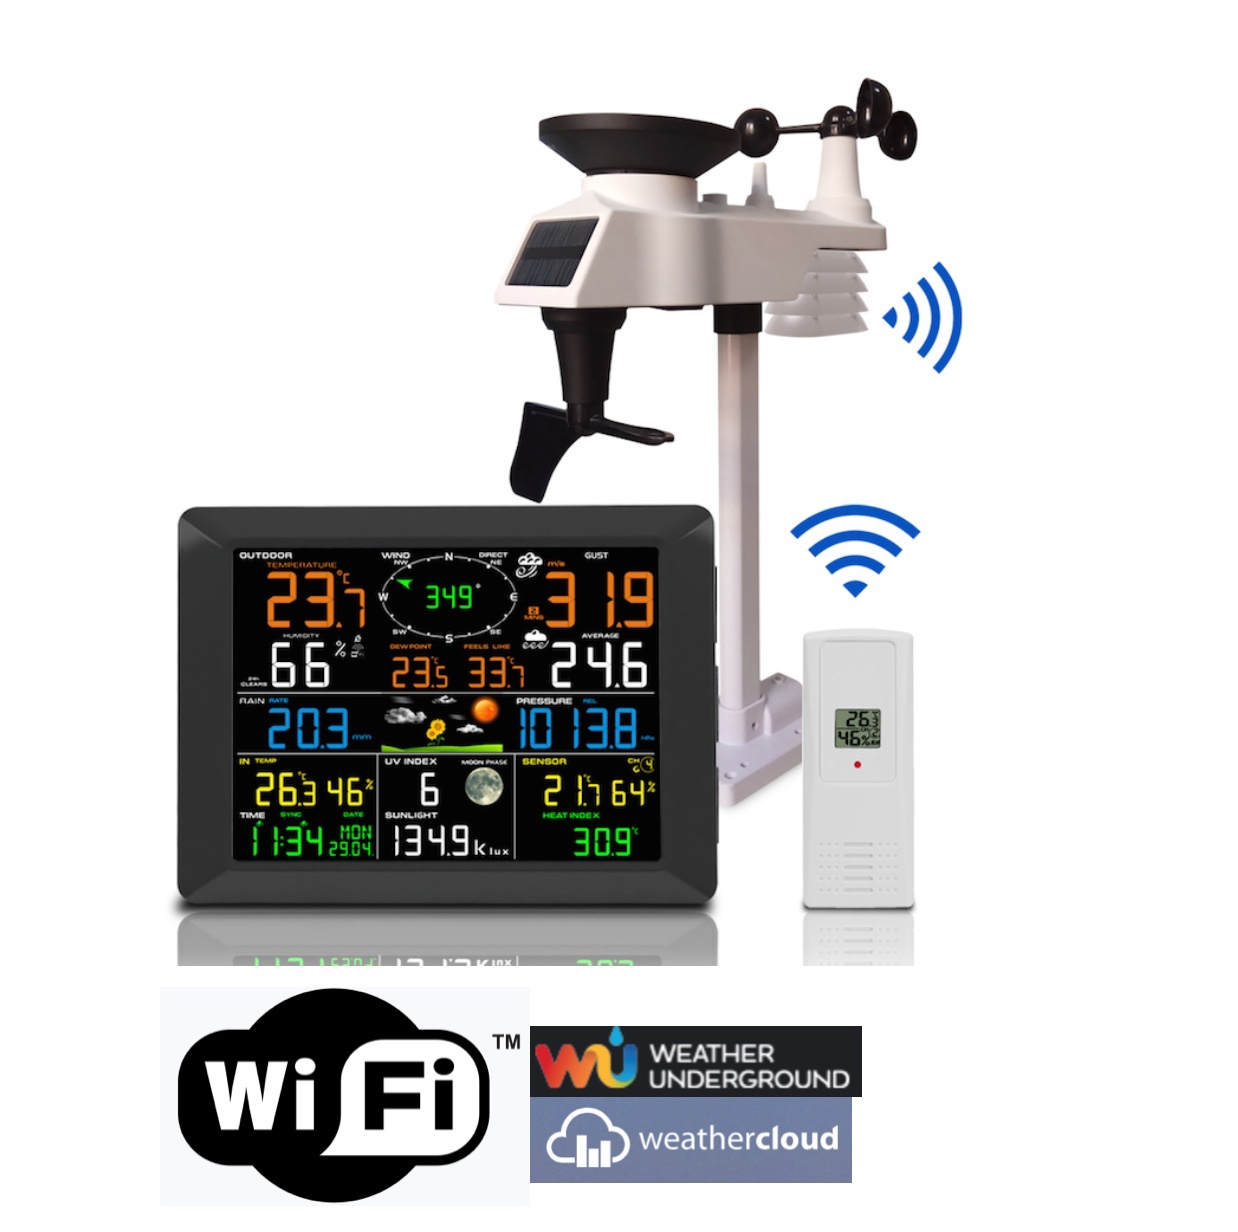 FT-0300-WIFI Jumbo display Internet Professional Weather Station